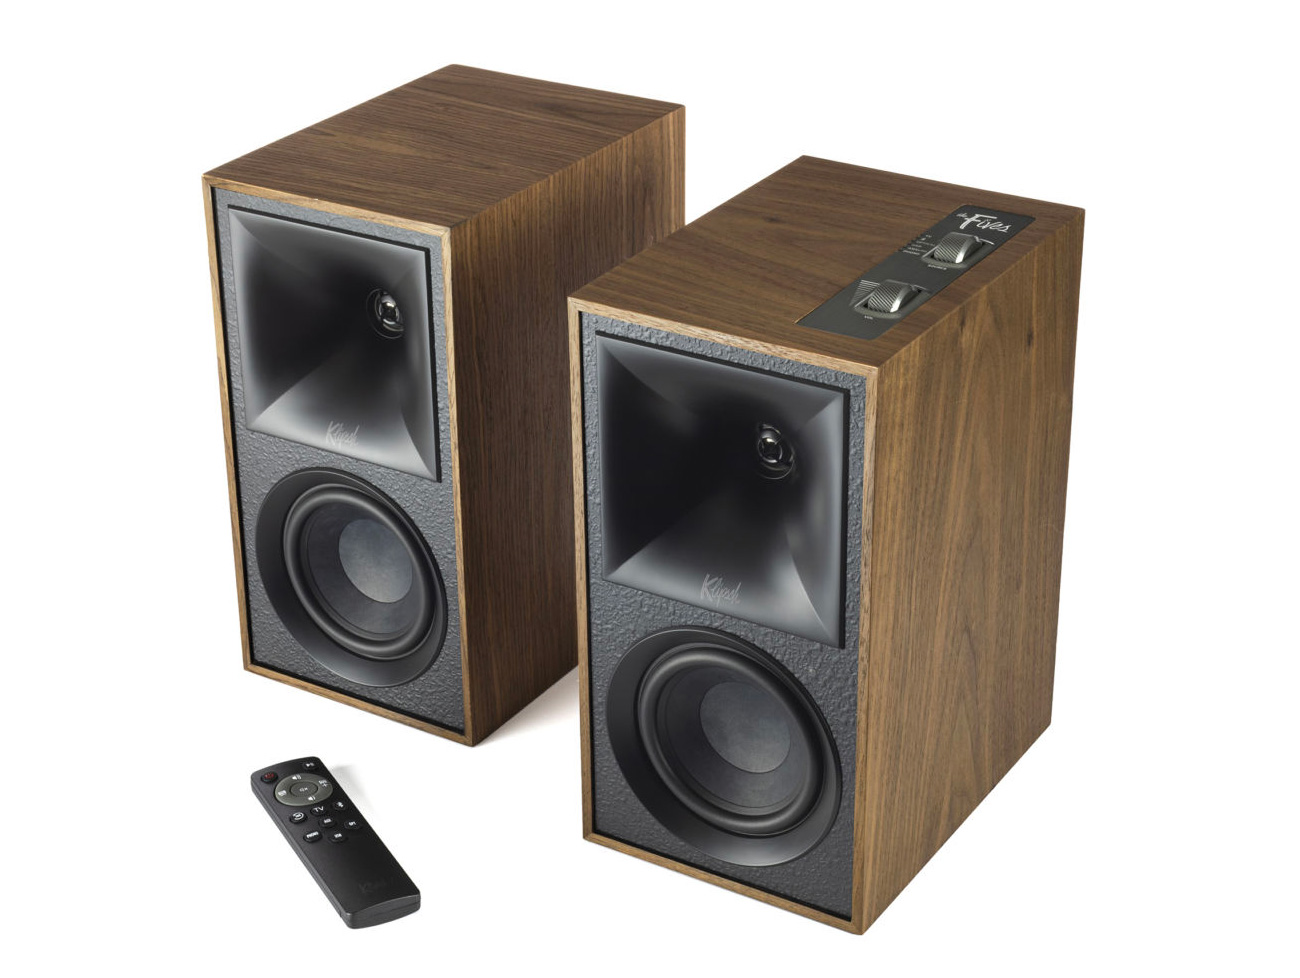 Klipsch Introduces 'The Fives' Atmos-Equipped Speakers at werd.com